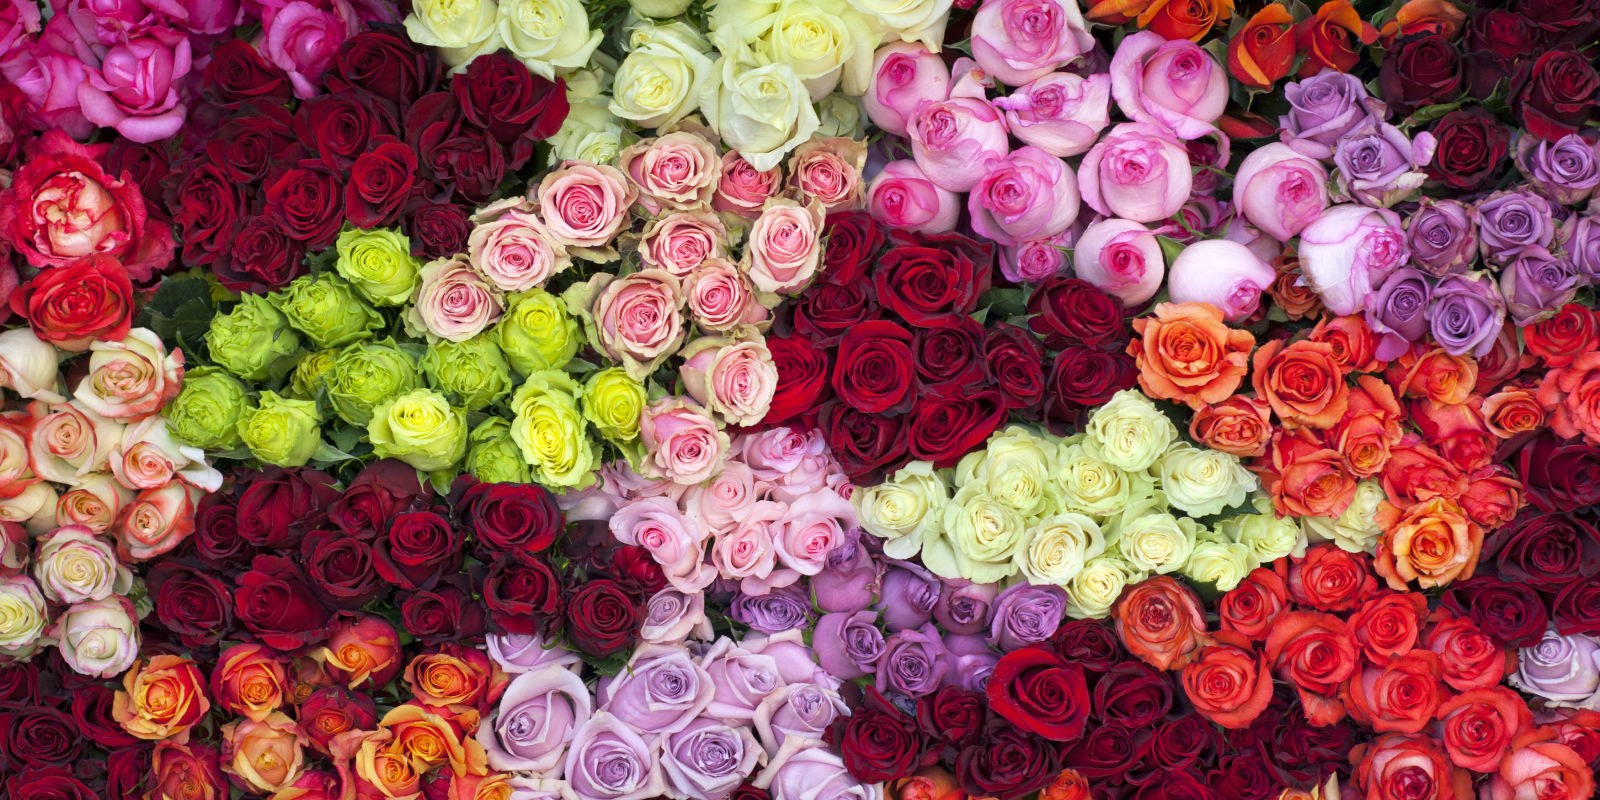 Image result for pink red yellow roses big bouquet